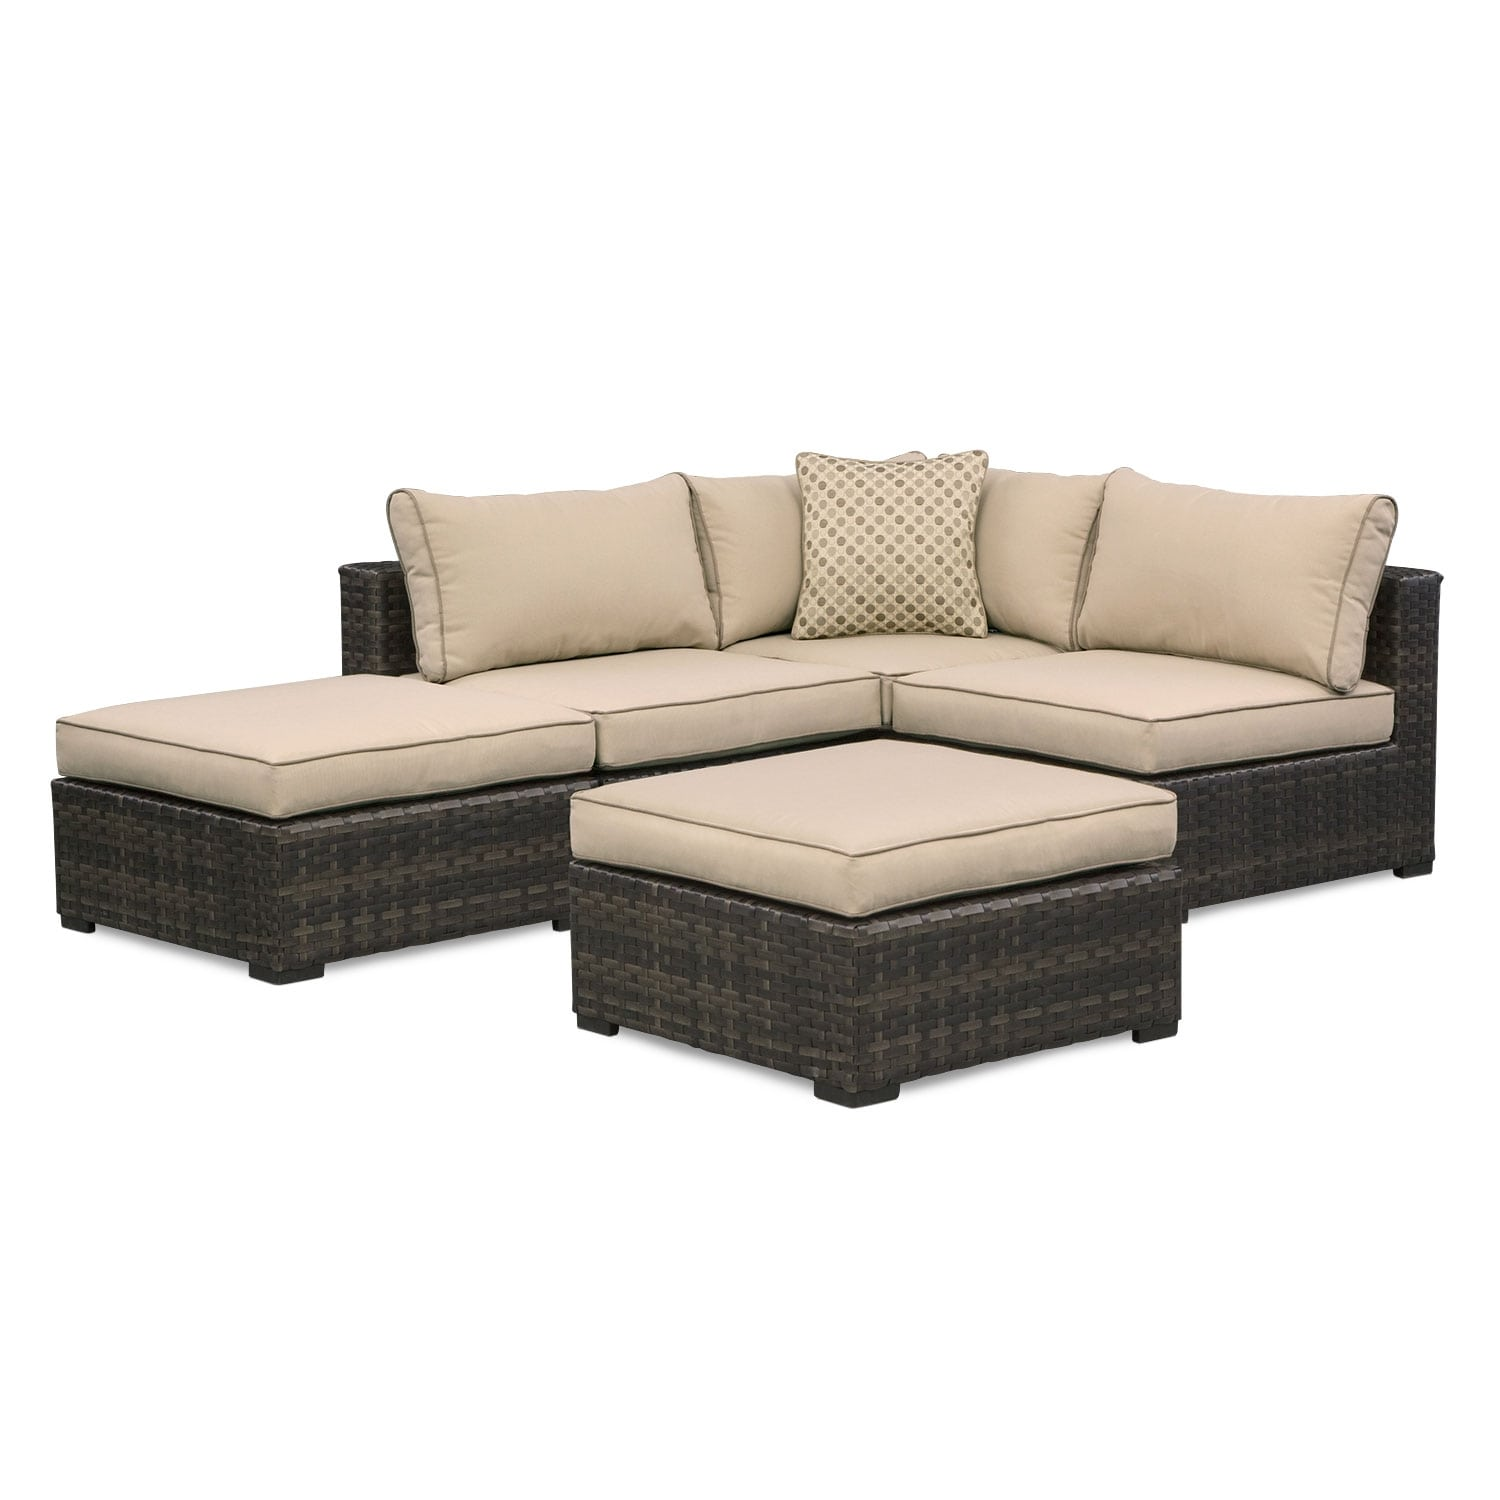 Regatta 3 Pc. Outdoor Sectional and 2 Ottomans